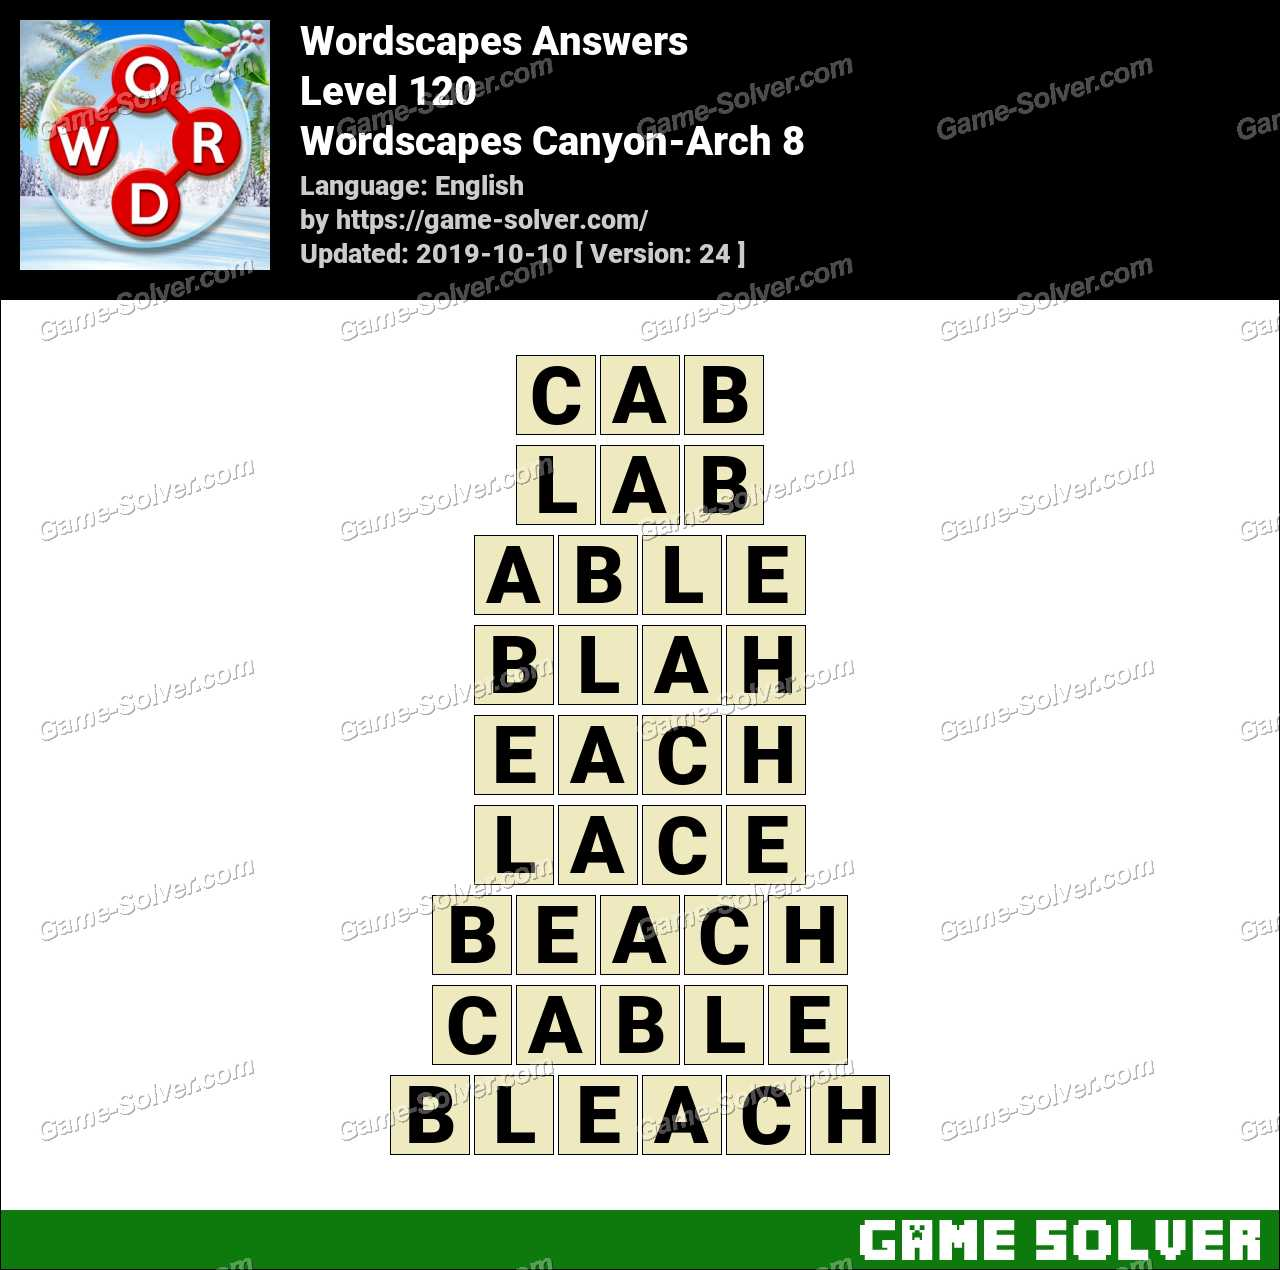 Wordscapes Canyon-Arch 8 Answers